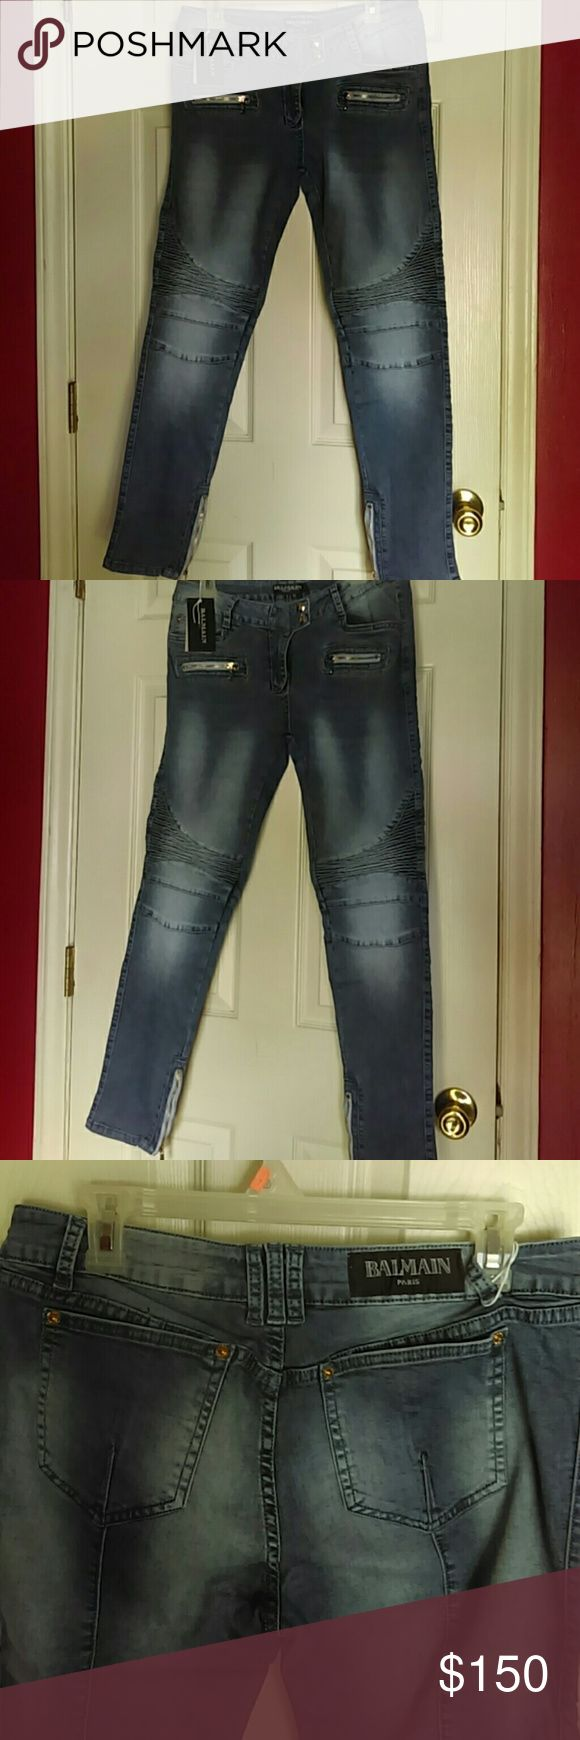 Women Balmain Denim Moto Jeans Denim Balmain skinny jeans...moto design.. gold zipper on pockets and the front..Also zips up at the angle which is in gold also pic#6..authentic has the original tags attached...Never worn just tried on..Has stretch to them...These are much wanted jeans and they are trending right now!! They ate size 32 but can git between a 30..31 also...just depends on how u like ur jeans to fit... Got to sale them...pls be reasonably when offering... Balmain Jeans Skinny